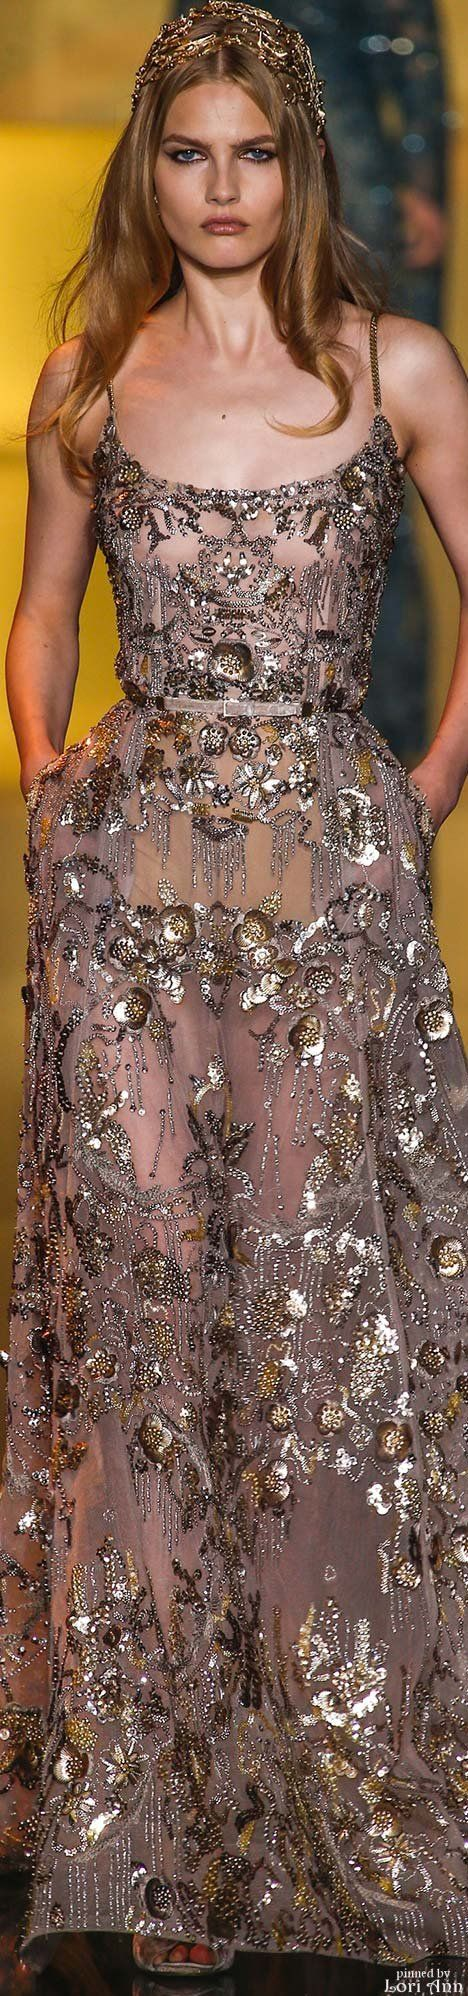 Elie Saab Couture Fall 2015 #fashion#hautecouture #details #runway #model #gorgeous #gown